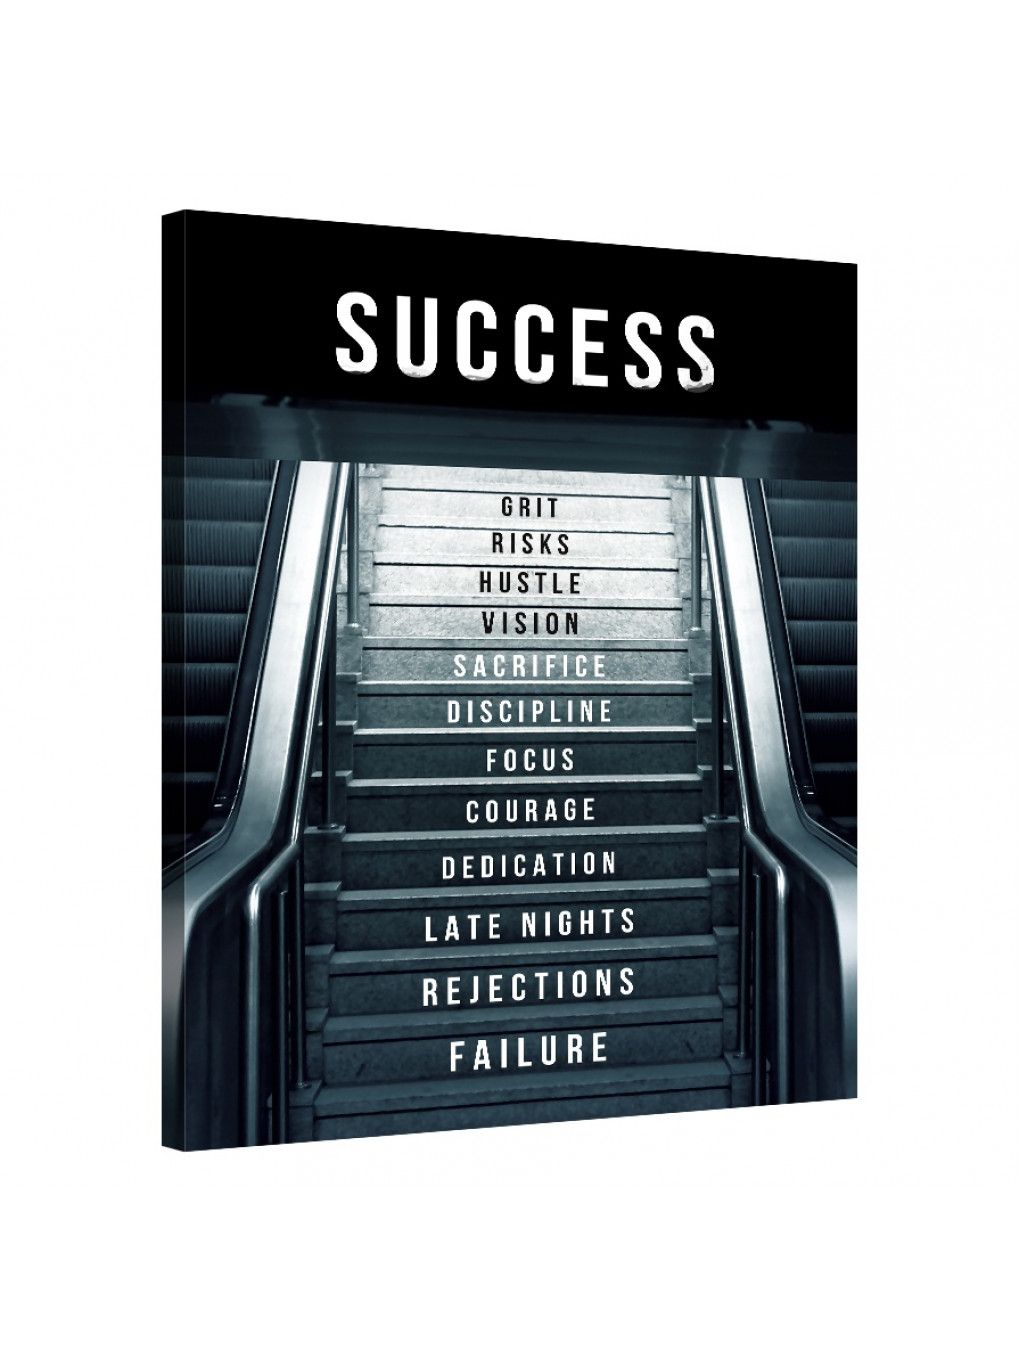 Take the Stairs - Success_SUC084_0